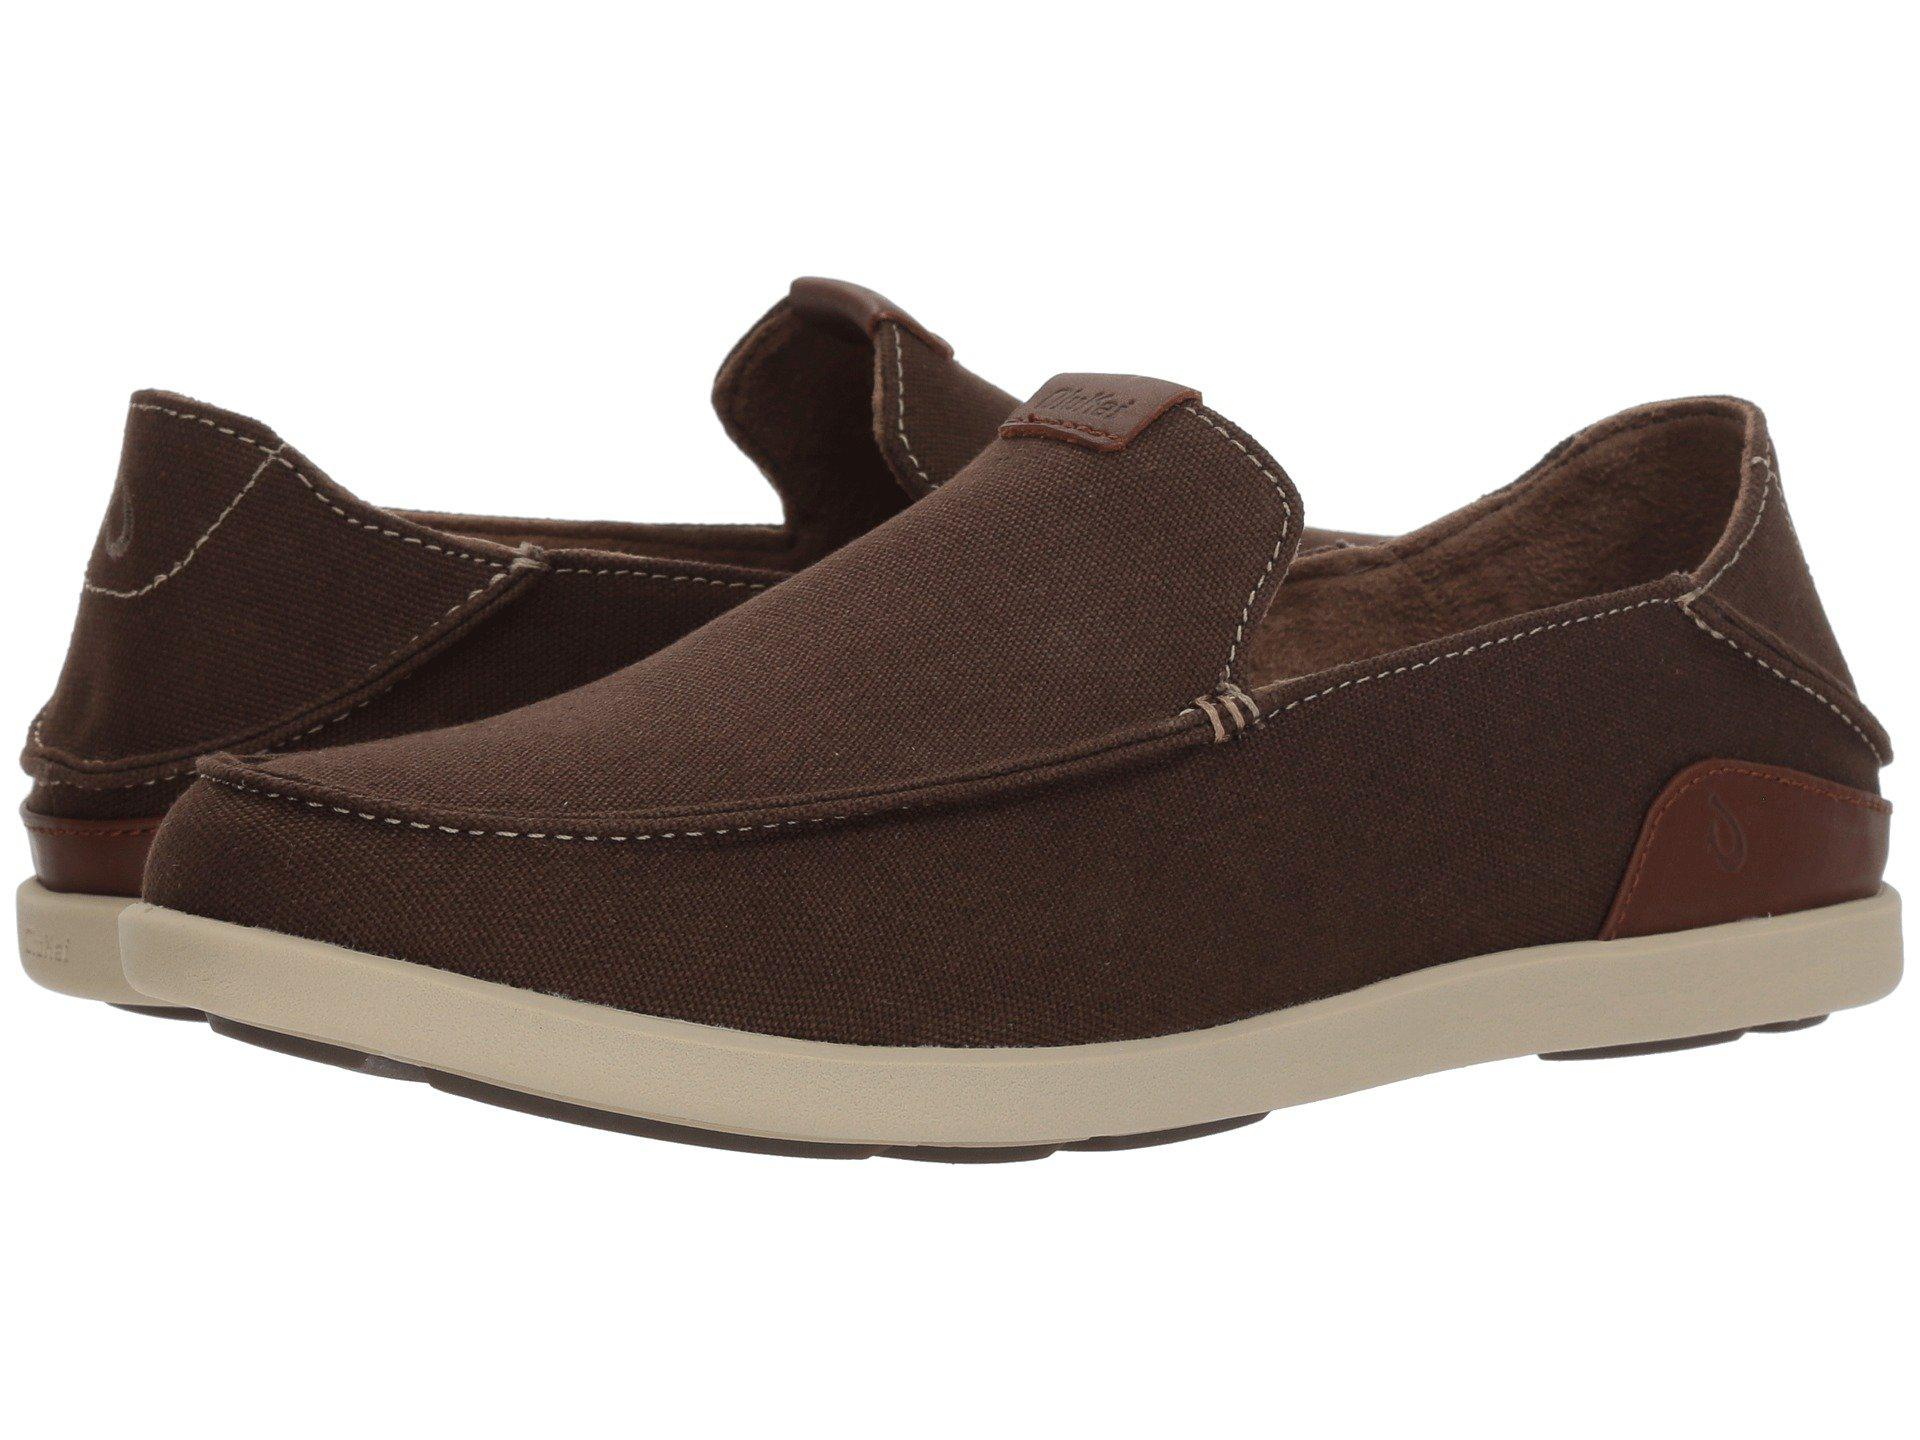 76ef2df1a22b Lyst - Olukai Manoa Slip-on (clay toffee) Men s Slip On Shoes in ...